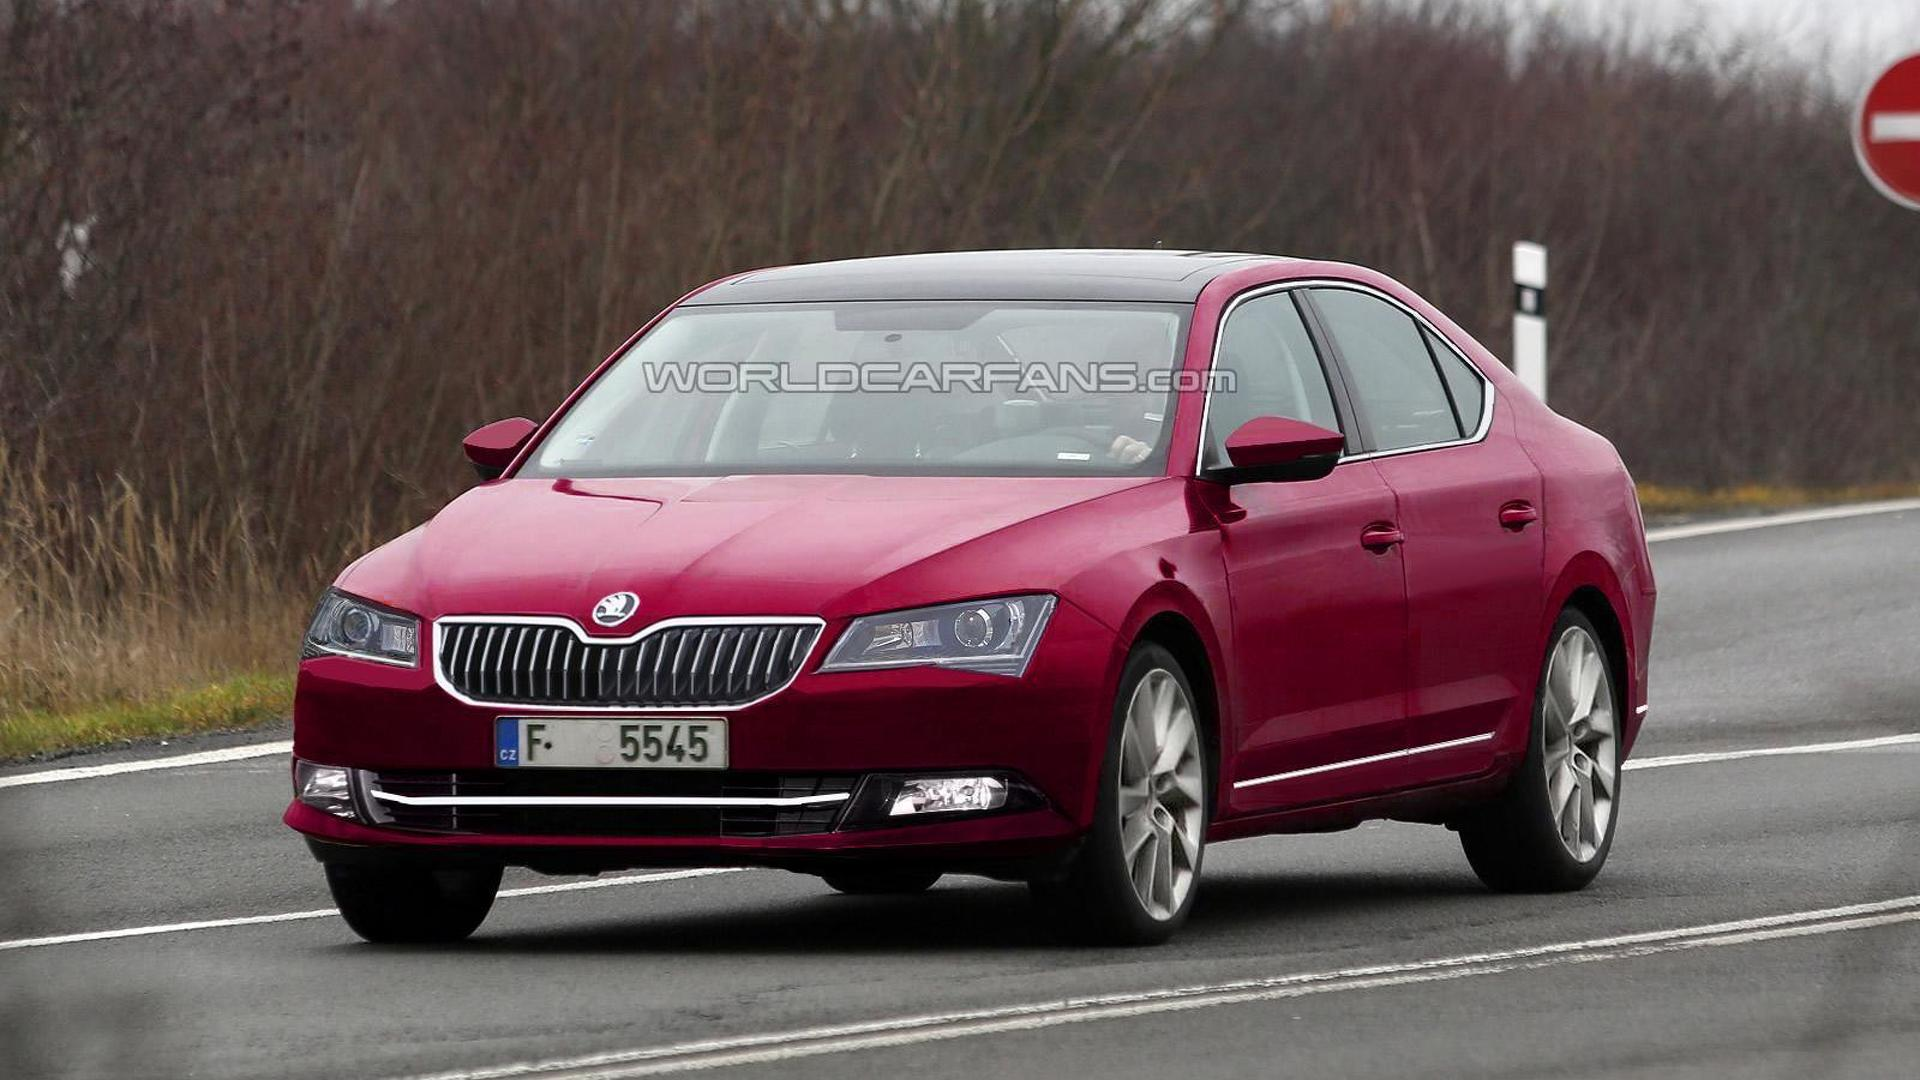 41 A Spy Shots Skoda Superb Prices